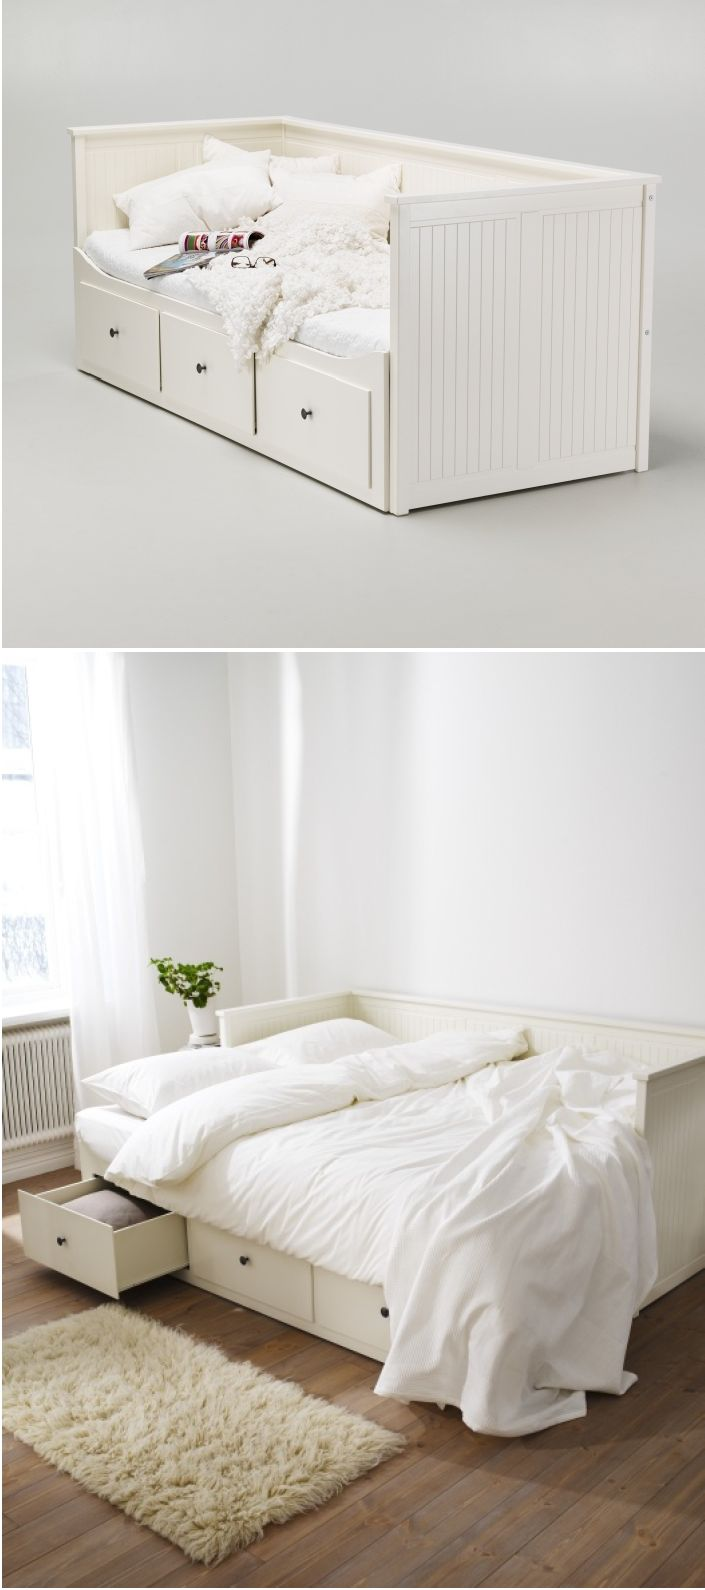 All white bedroom ikea - Create A Welcoming Bedroom Away From Home For Guests With The Hemnes Daybed It Can